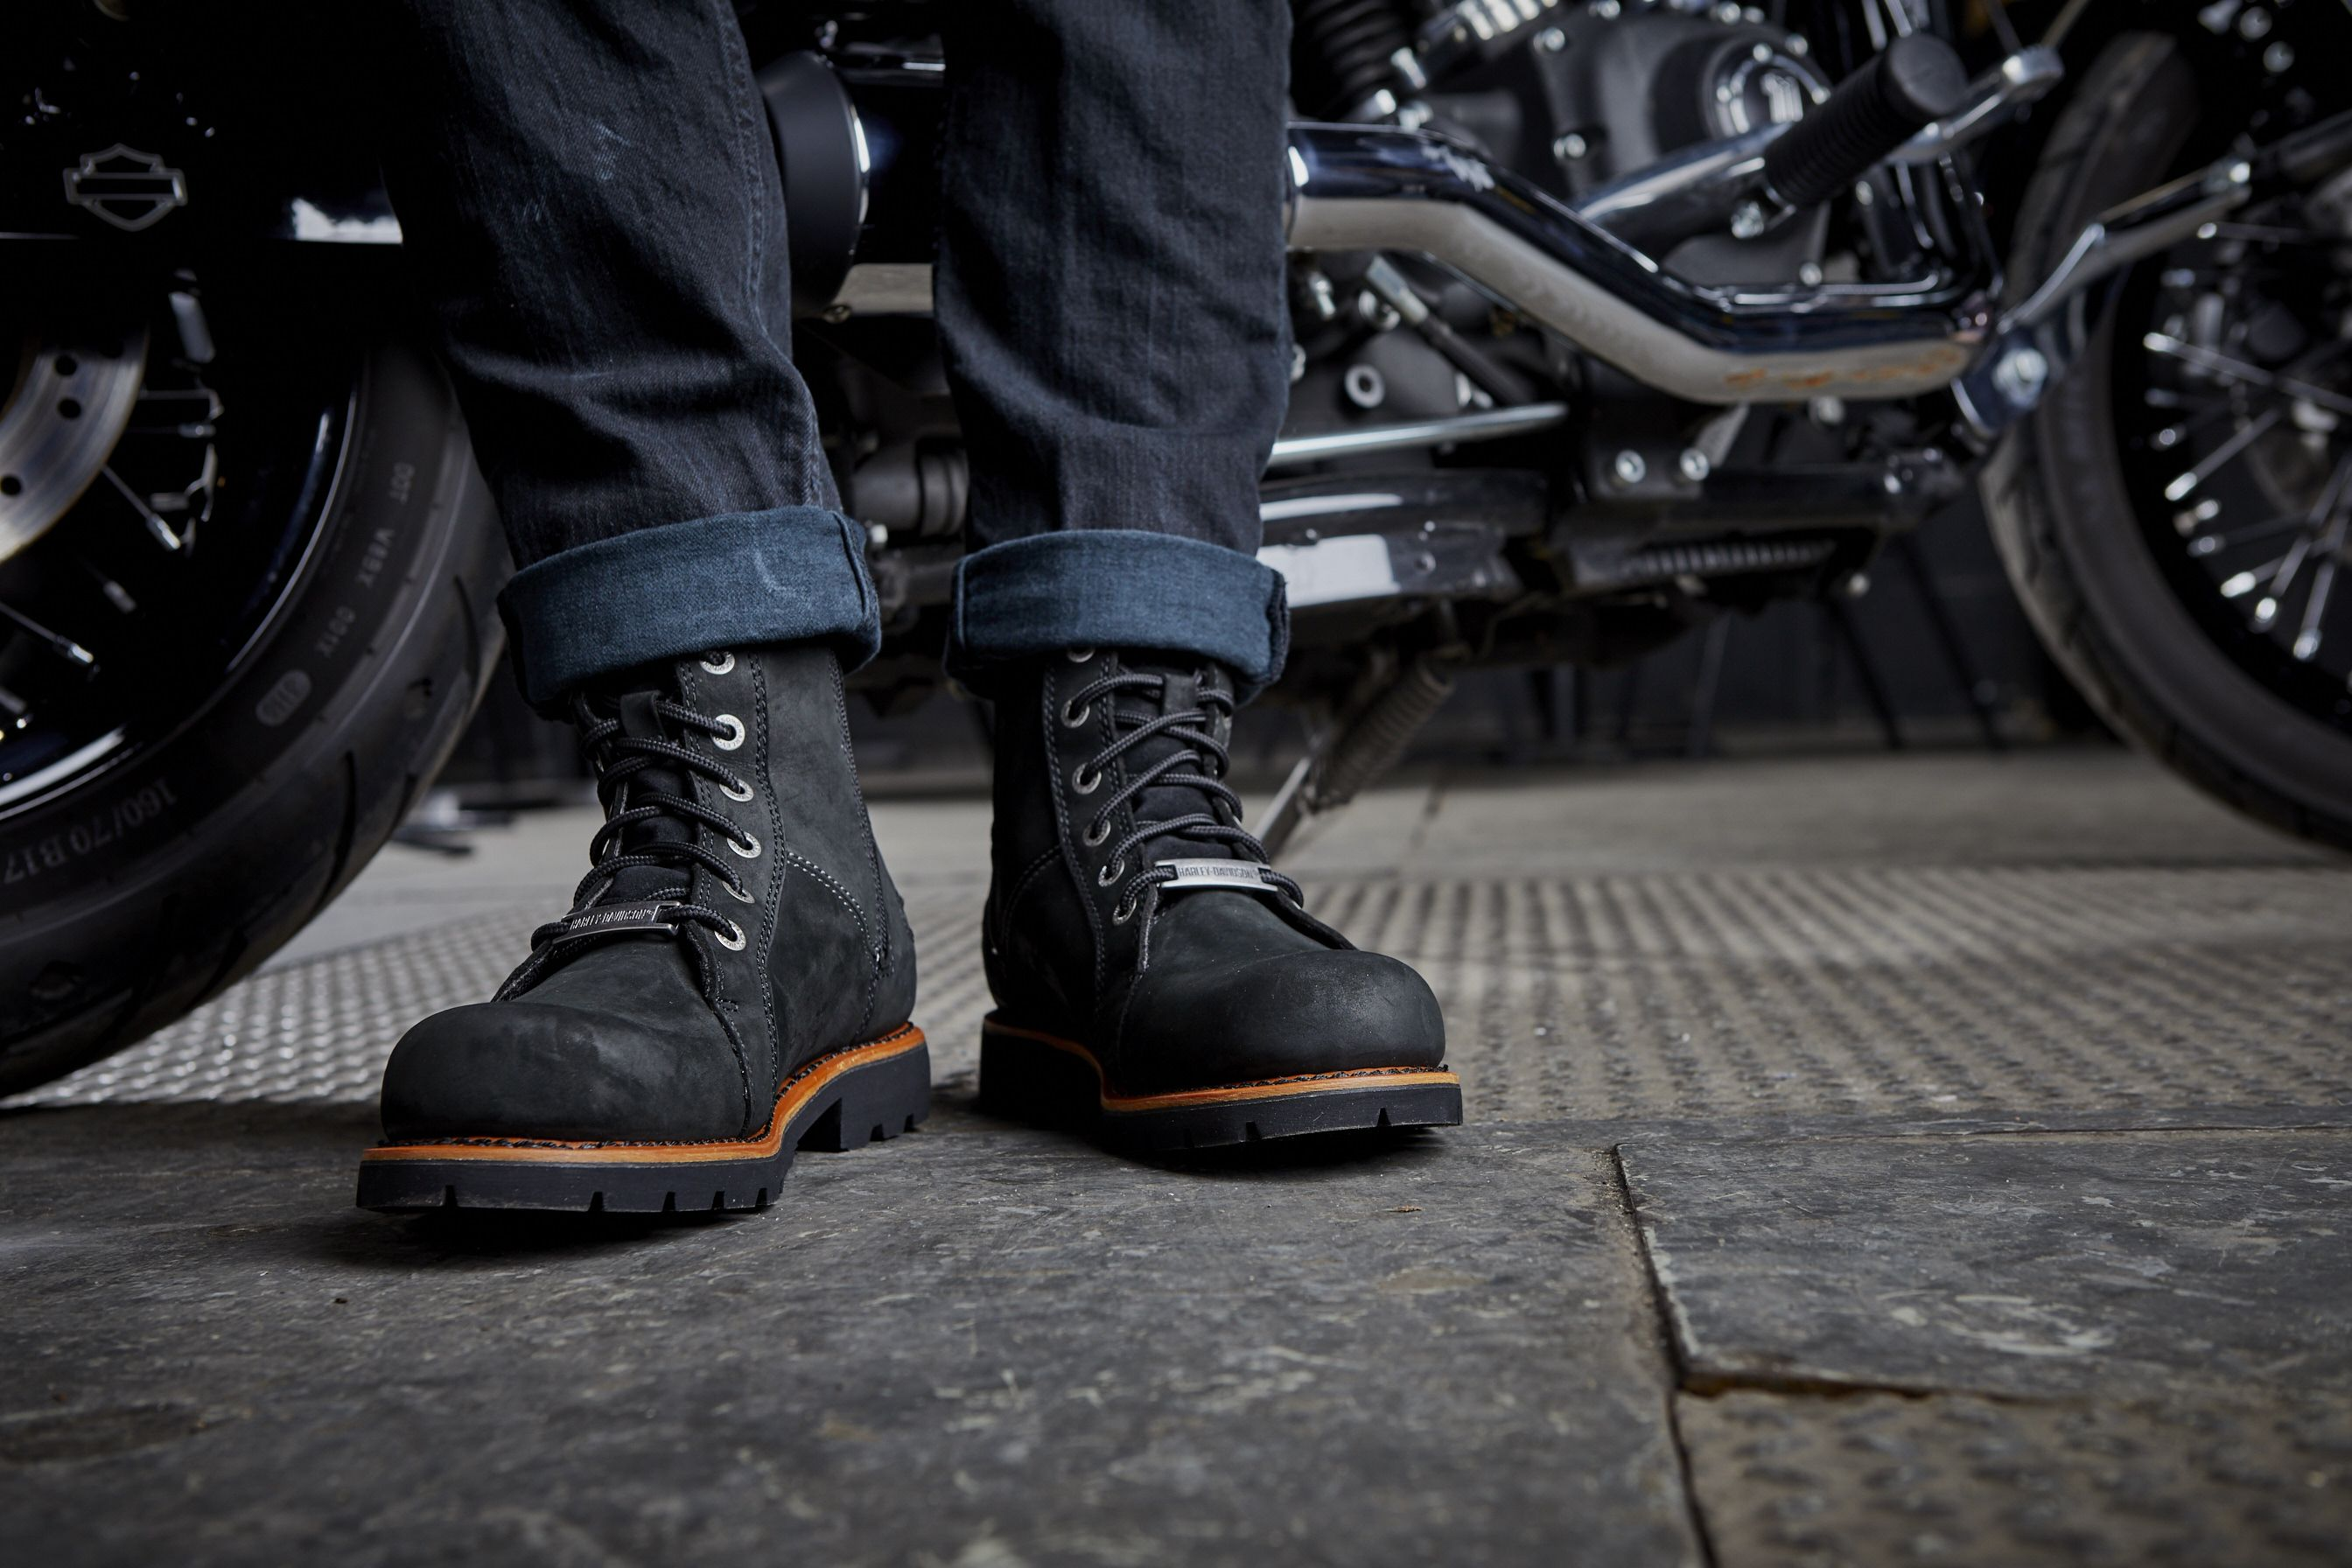 253a7a26fdd Men s Wickson Boot Mens Motorcycle Boots